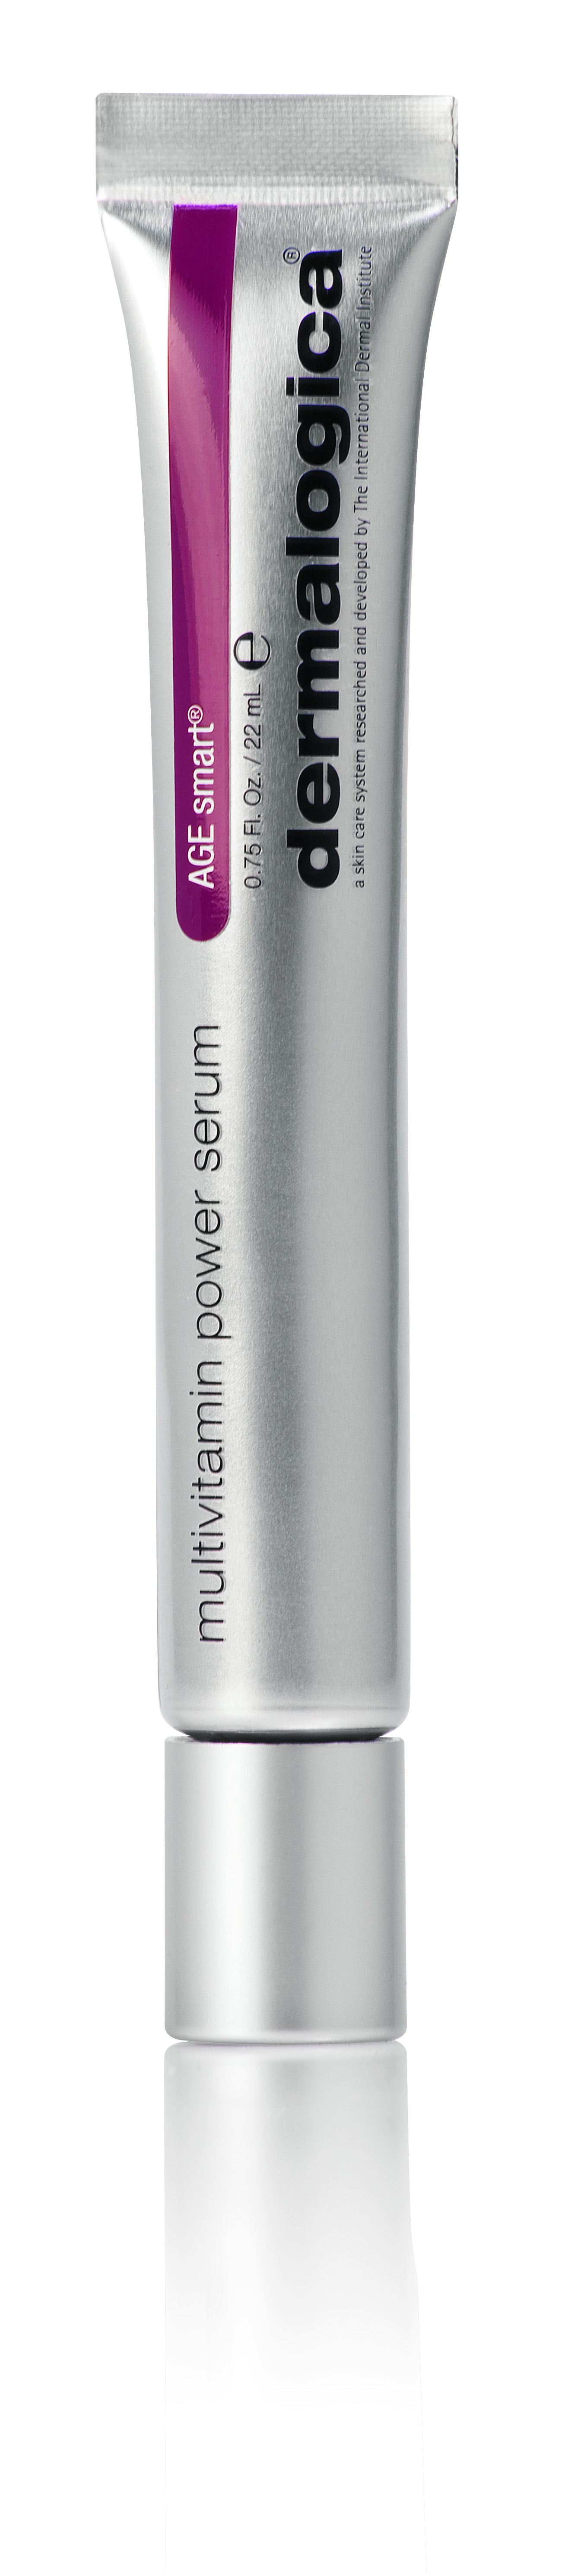 MV Power Serum_HR